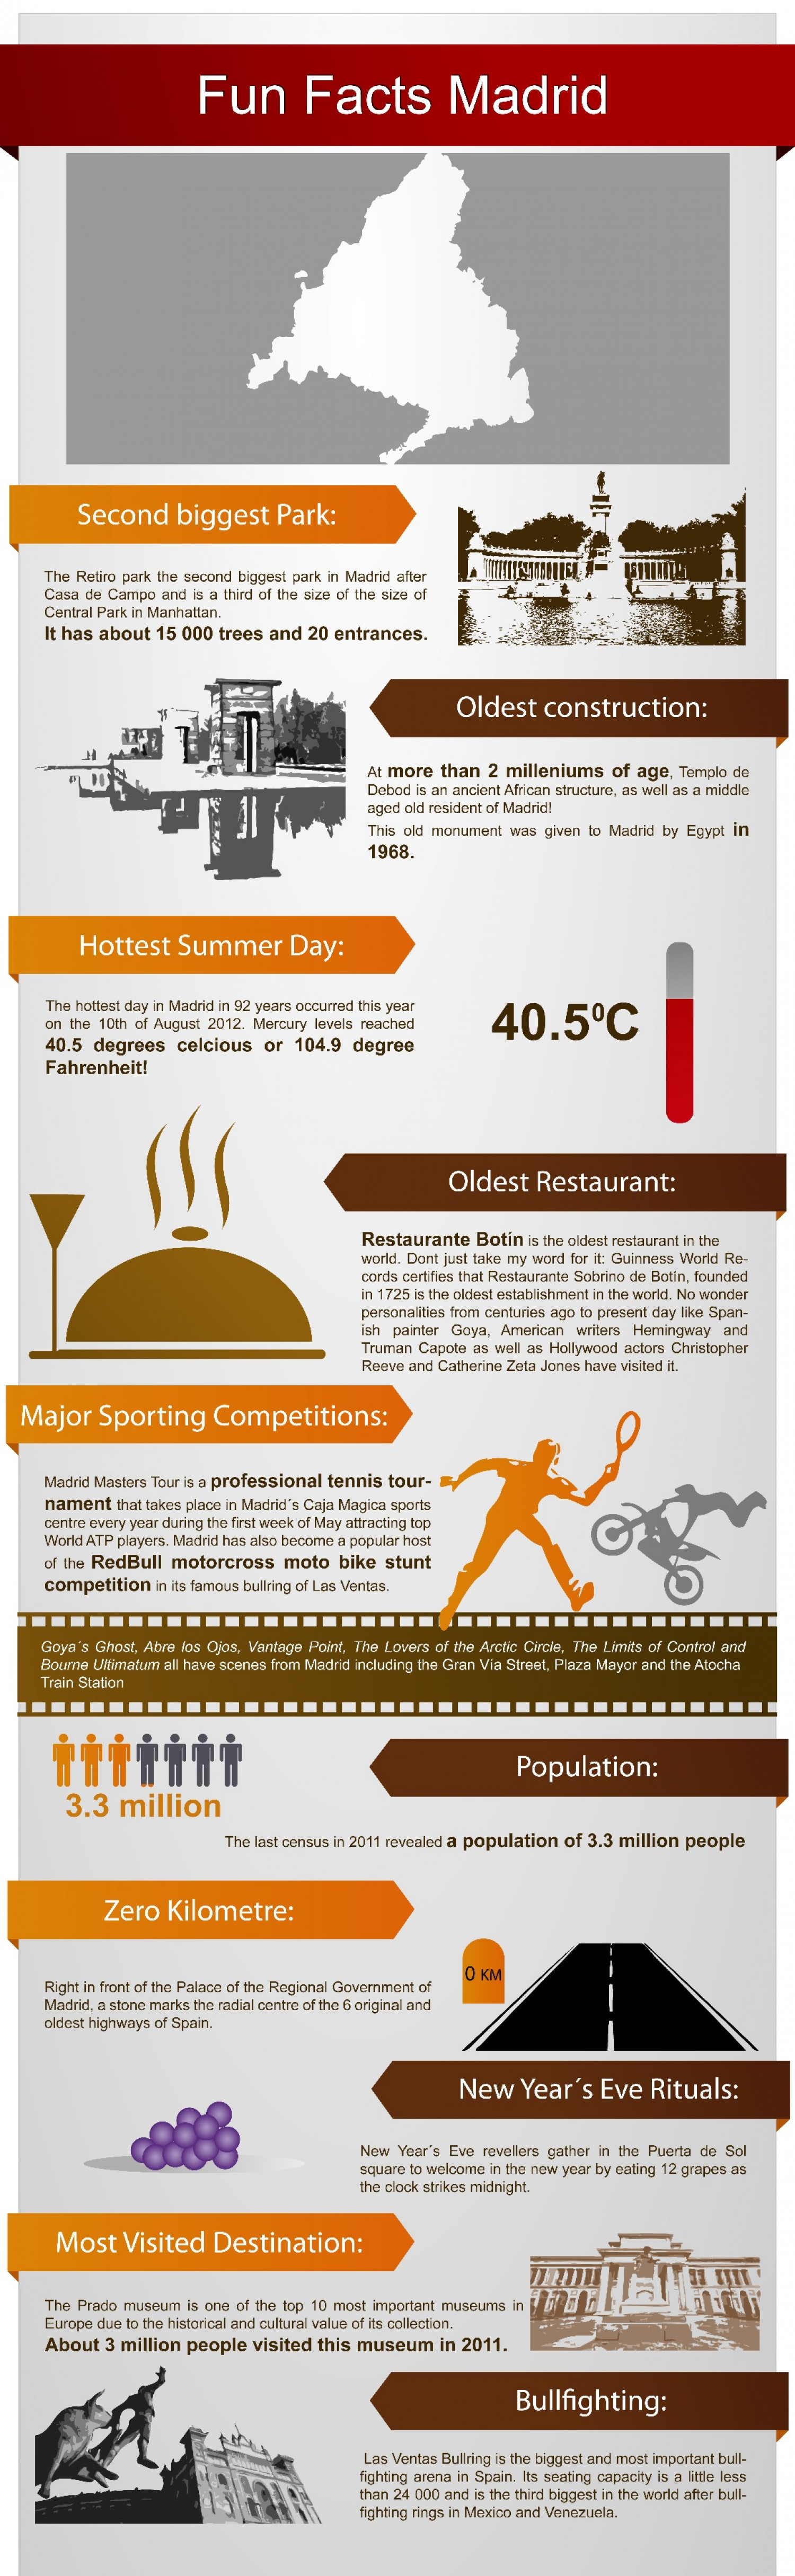 Fun Facts about Madrid Infographic